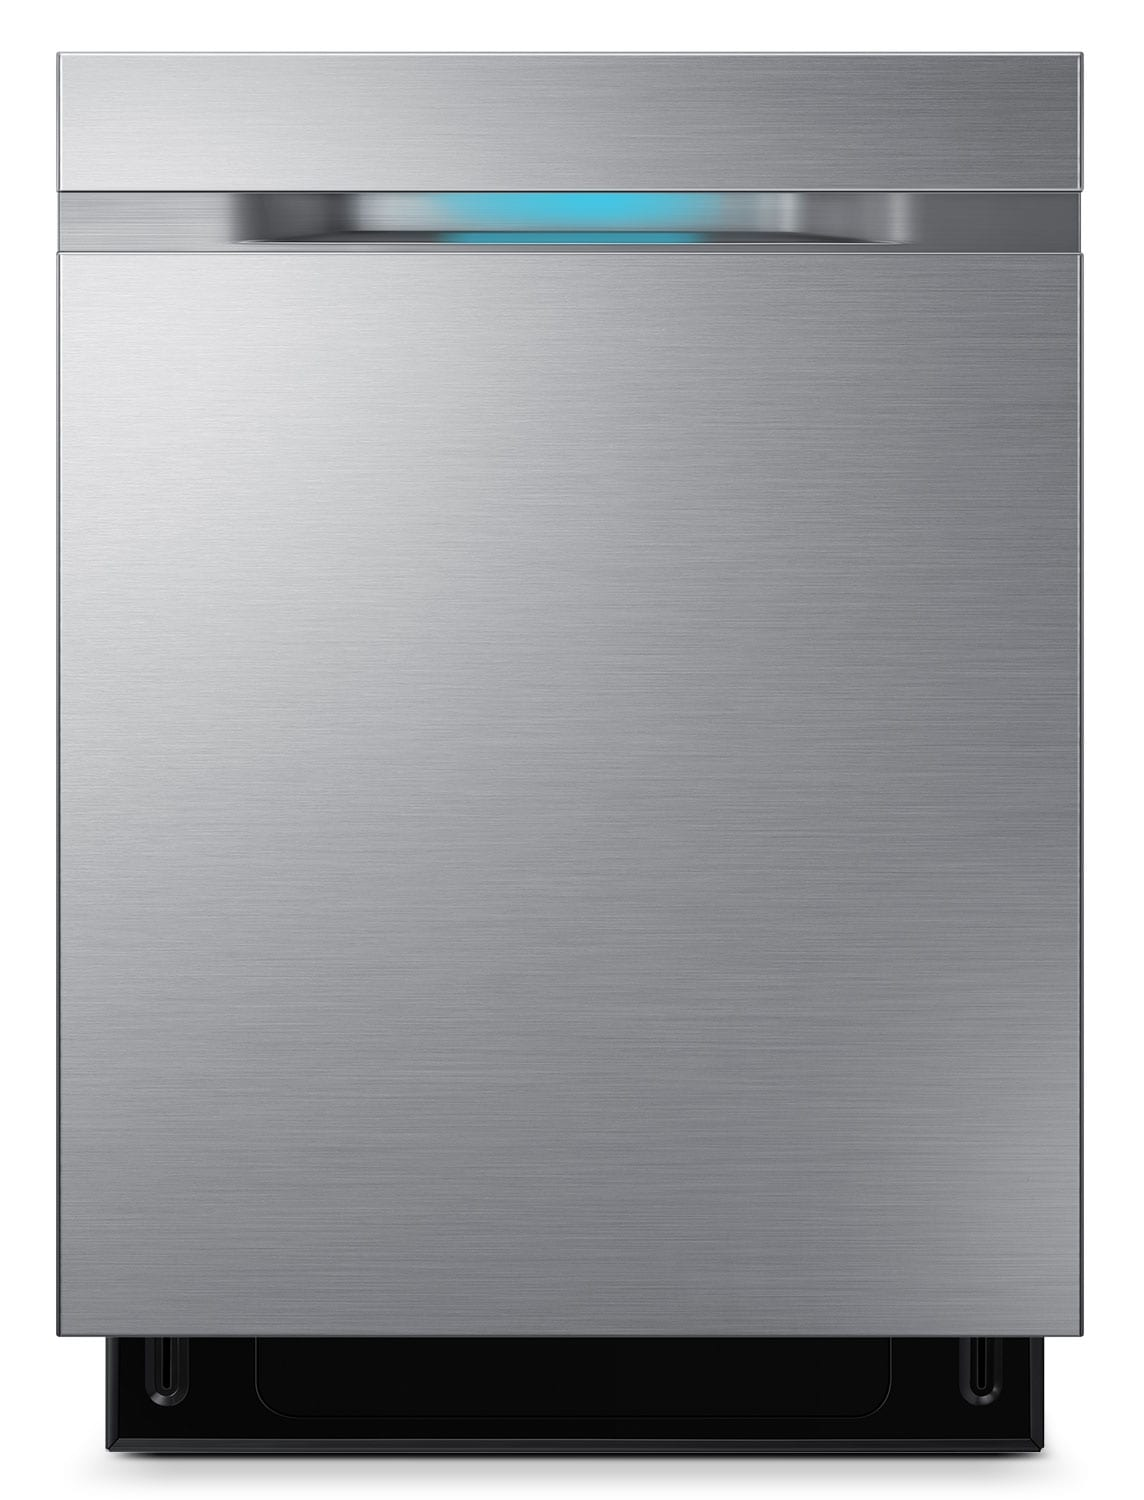 "Clean-Up - Samsung Stainless Steel 24"" Dishwasher - DW80J7550US/AC"